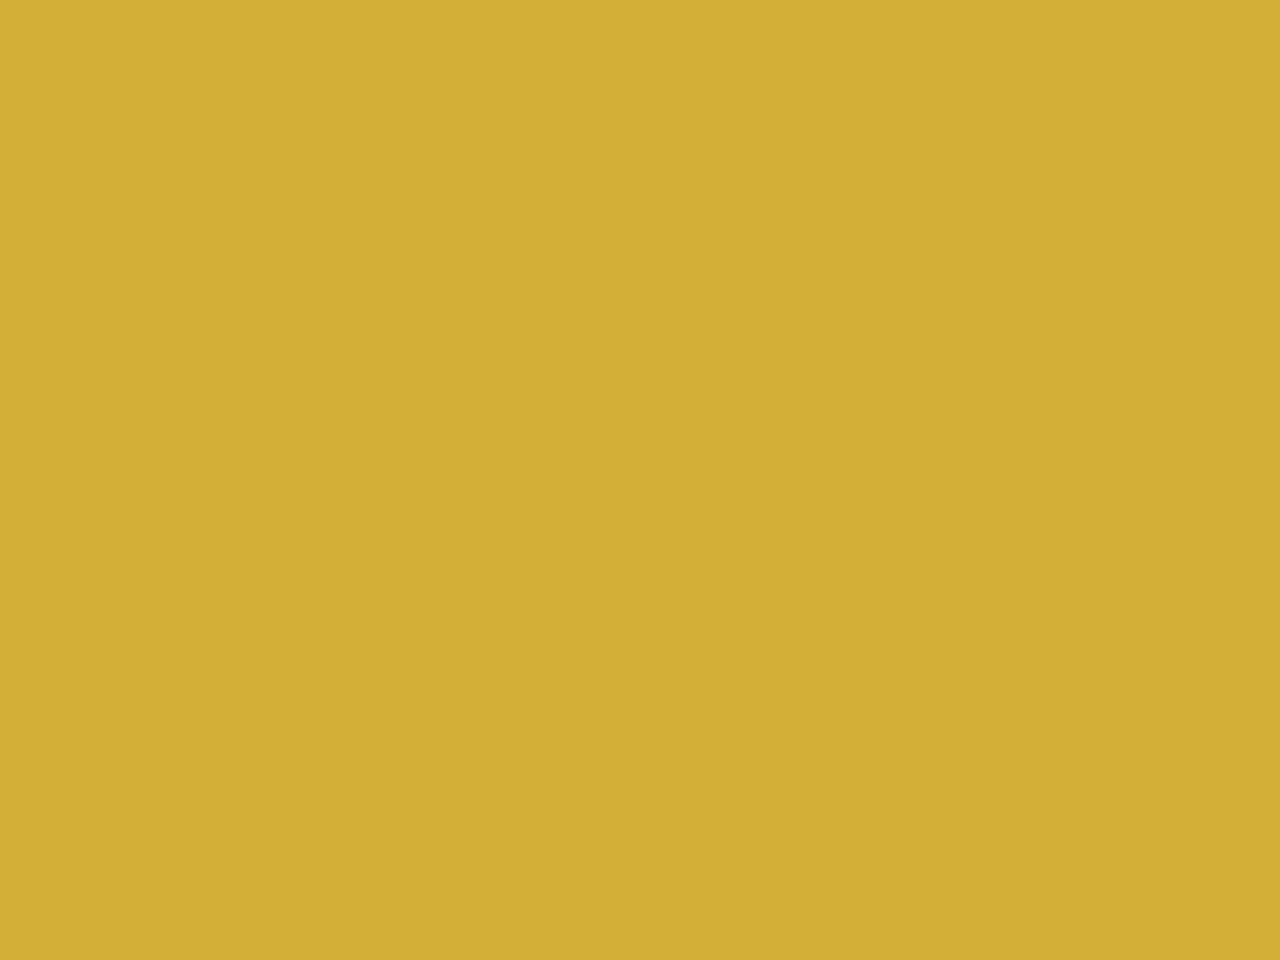 1280x960 Gold Metallic Solid Color Background